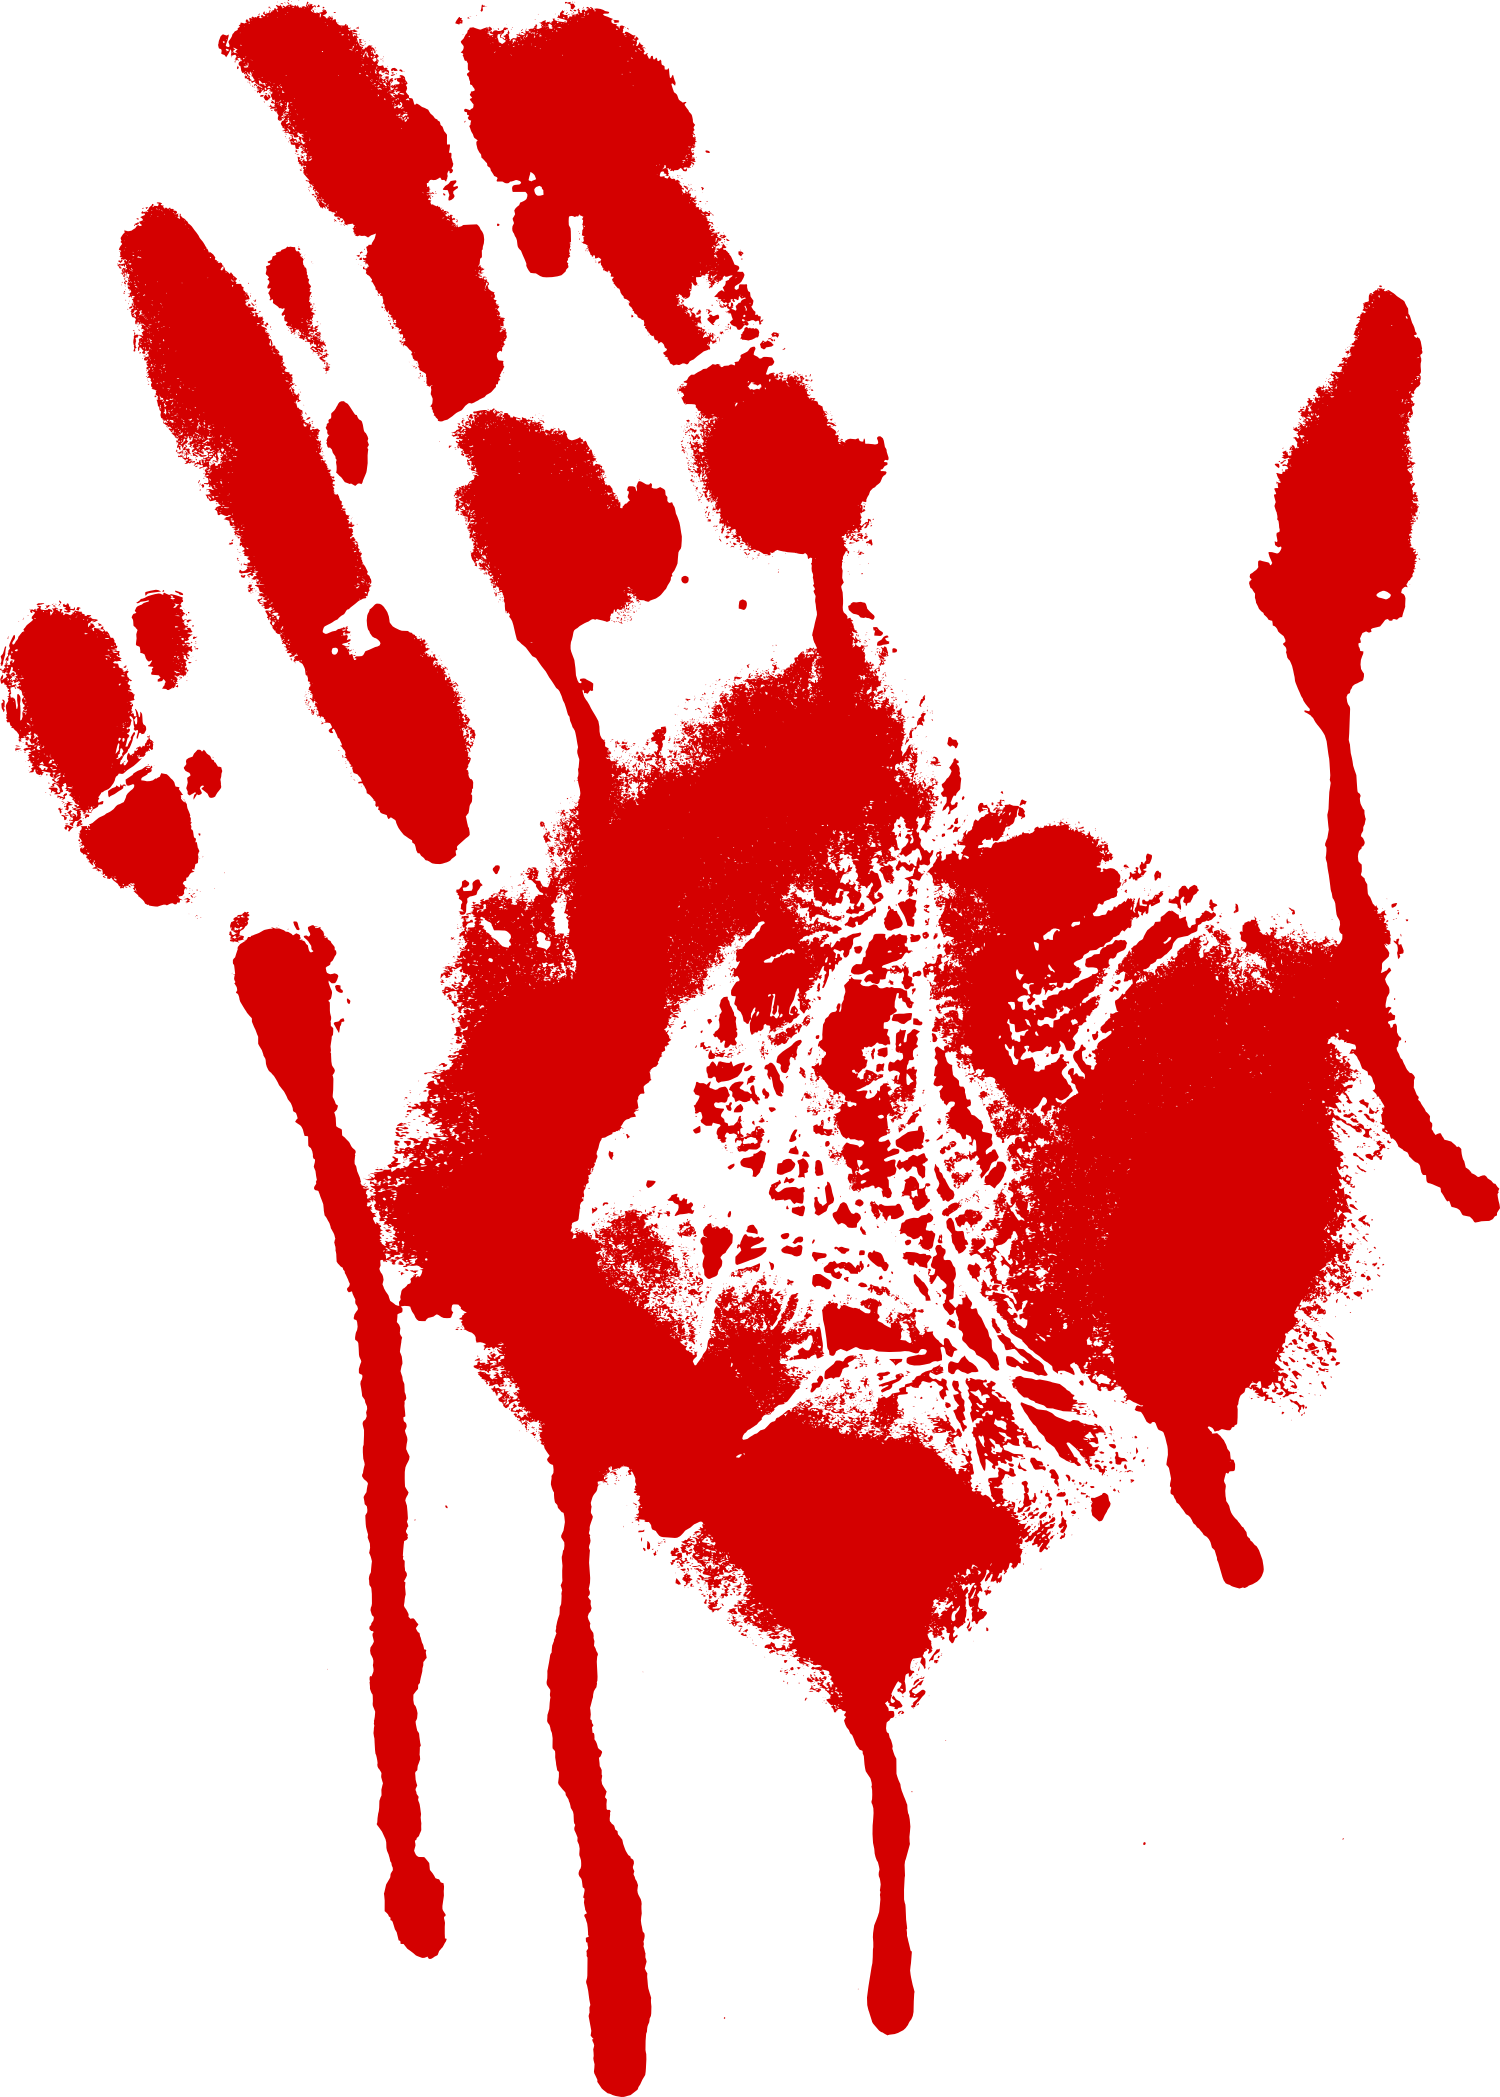 bloody png onlygfx. Handprint transparent red clip art freeuse stock